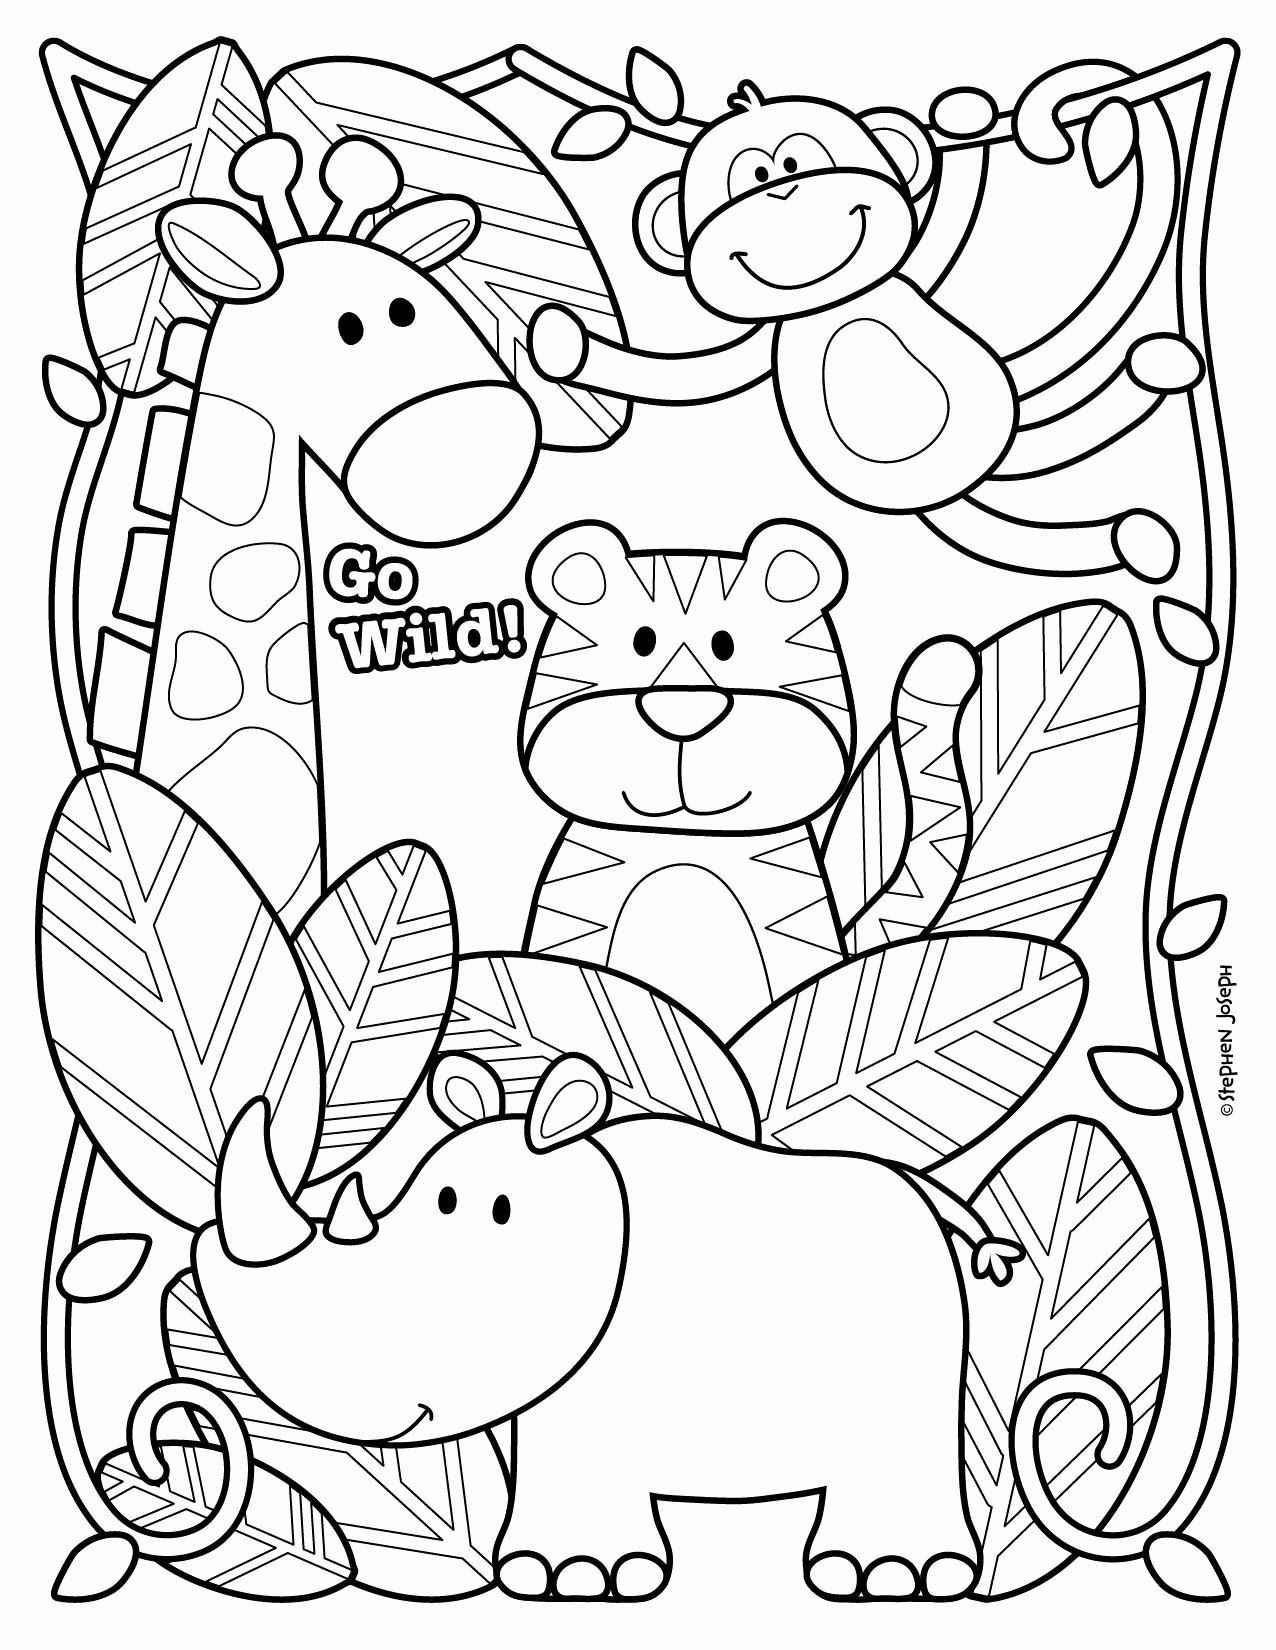 Pet Worksheets for Preschoolers Inspirational Coloring Best Printable Zoo Animal with forolers Baby